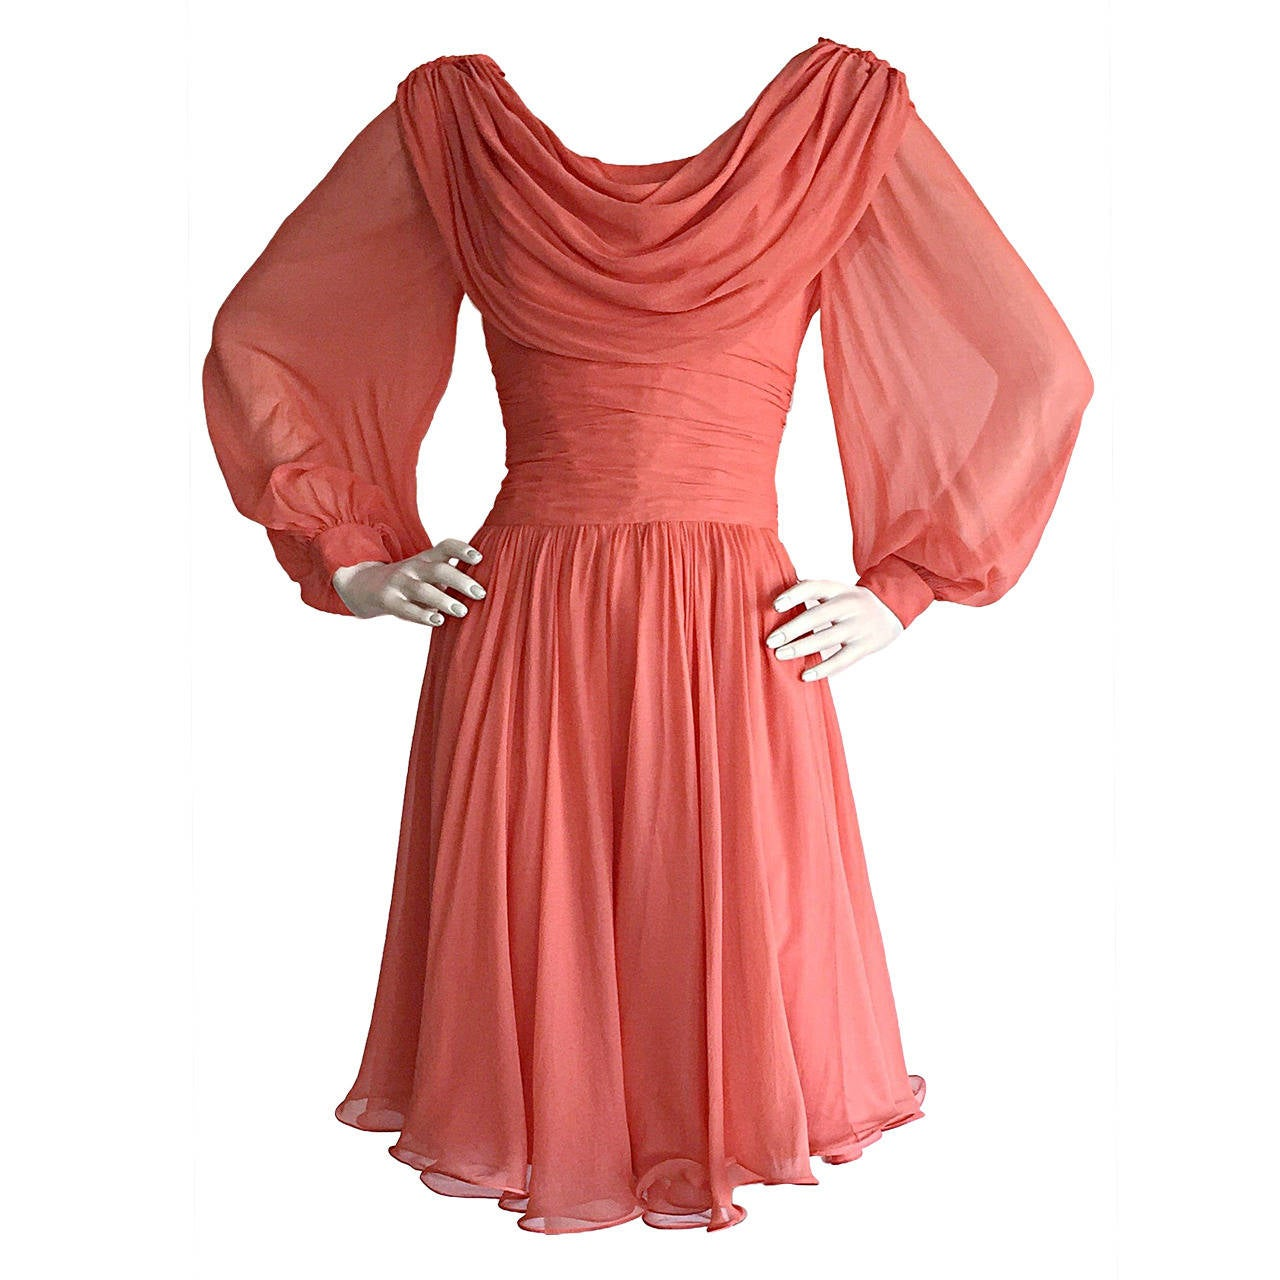 Beautiful 1970s Mignon Pink Coral Grecian Chiffon Dress 1